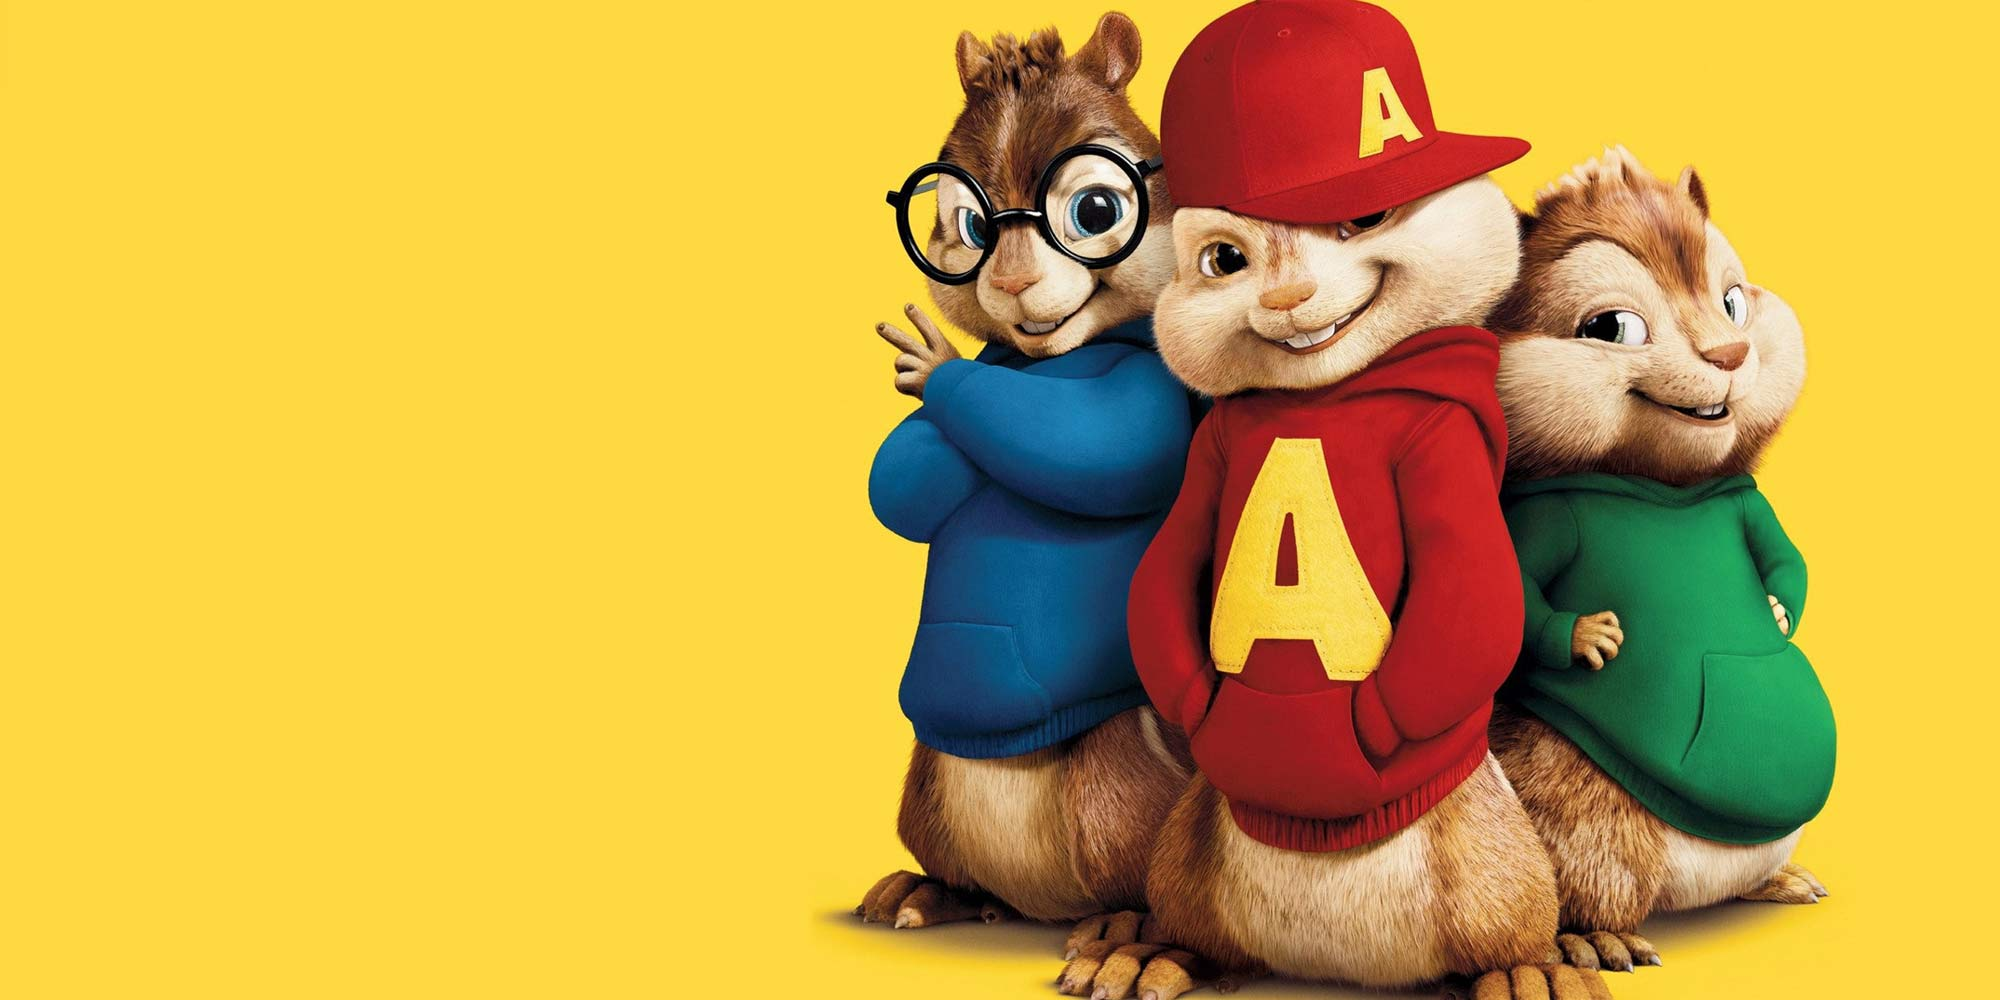 Alvin and the Chipmunks: The Road Chip - Header Image